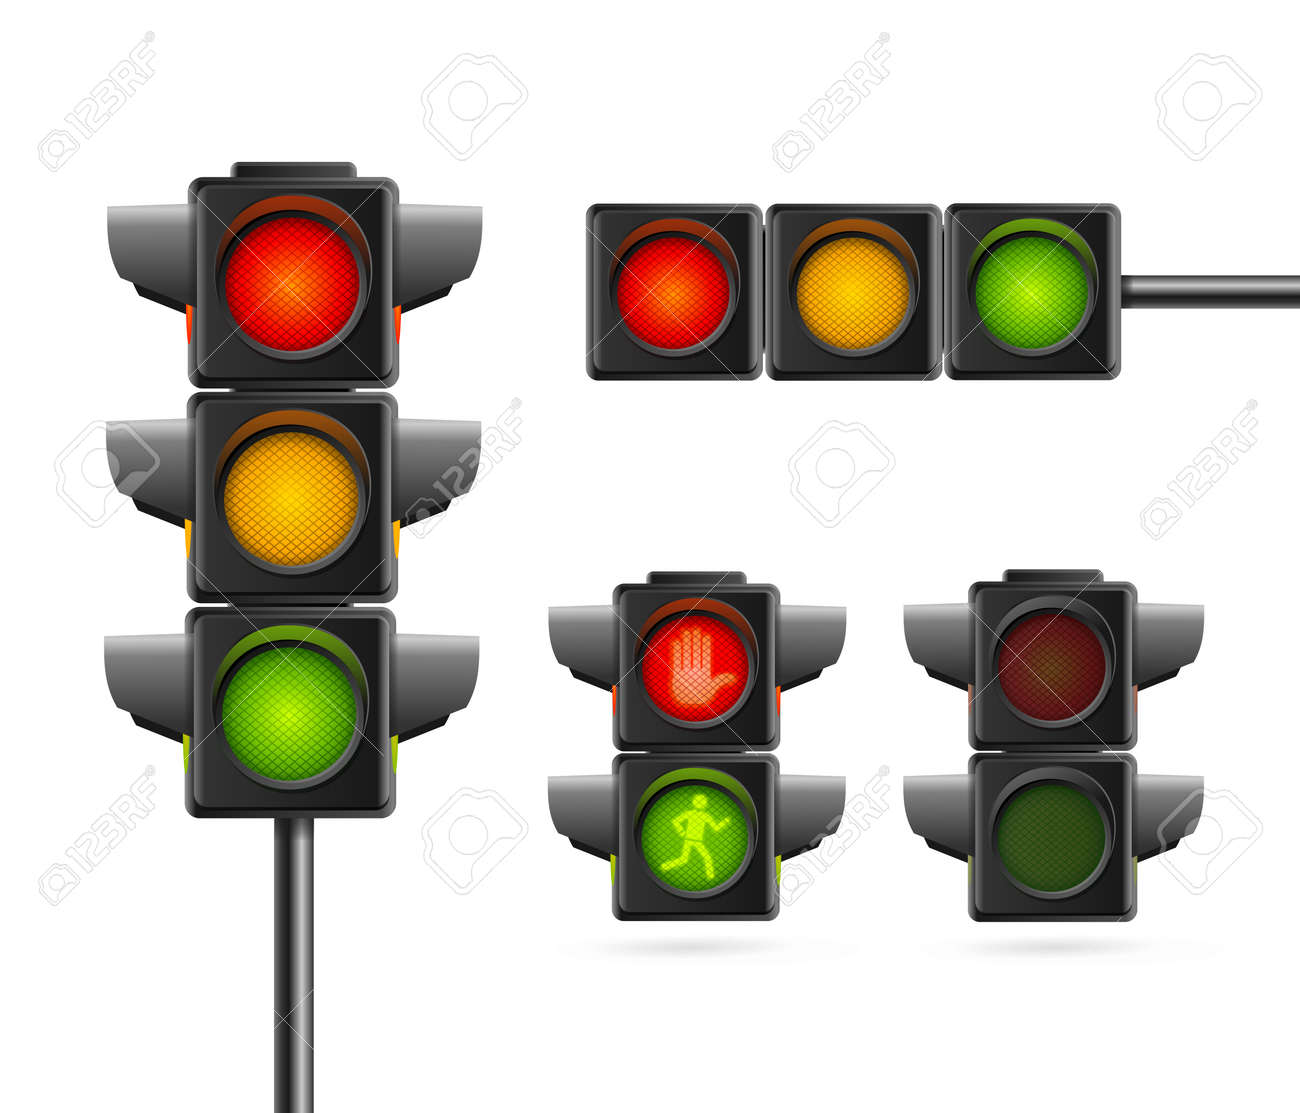 Realistic Detailed 3d Road Traffic Light Set. Vector - 167912405